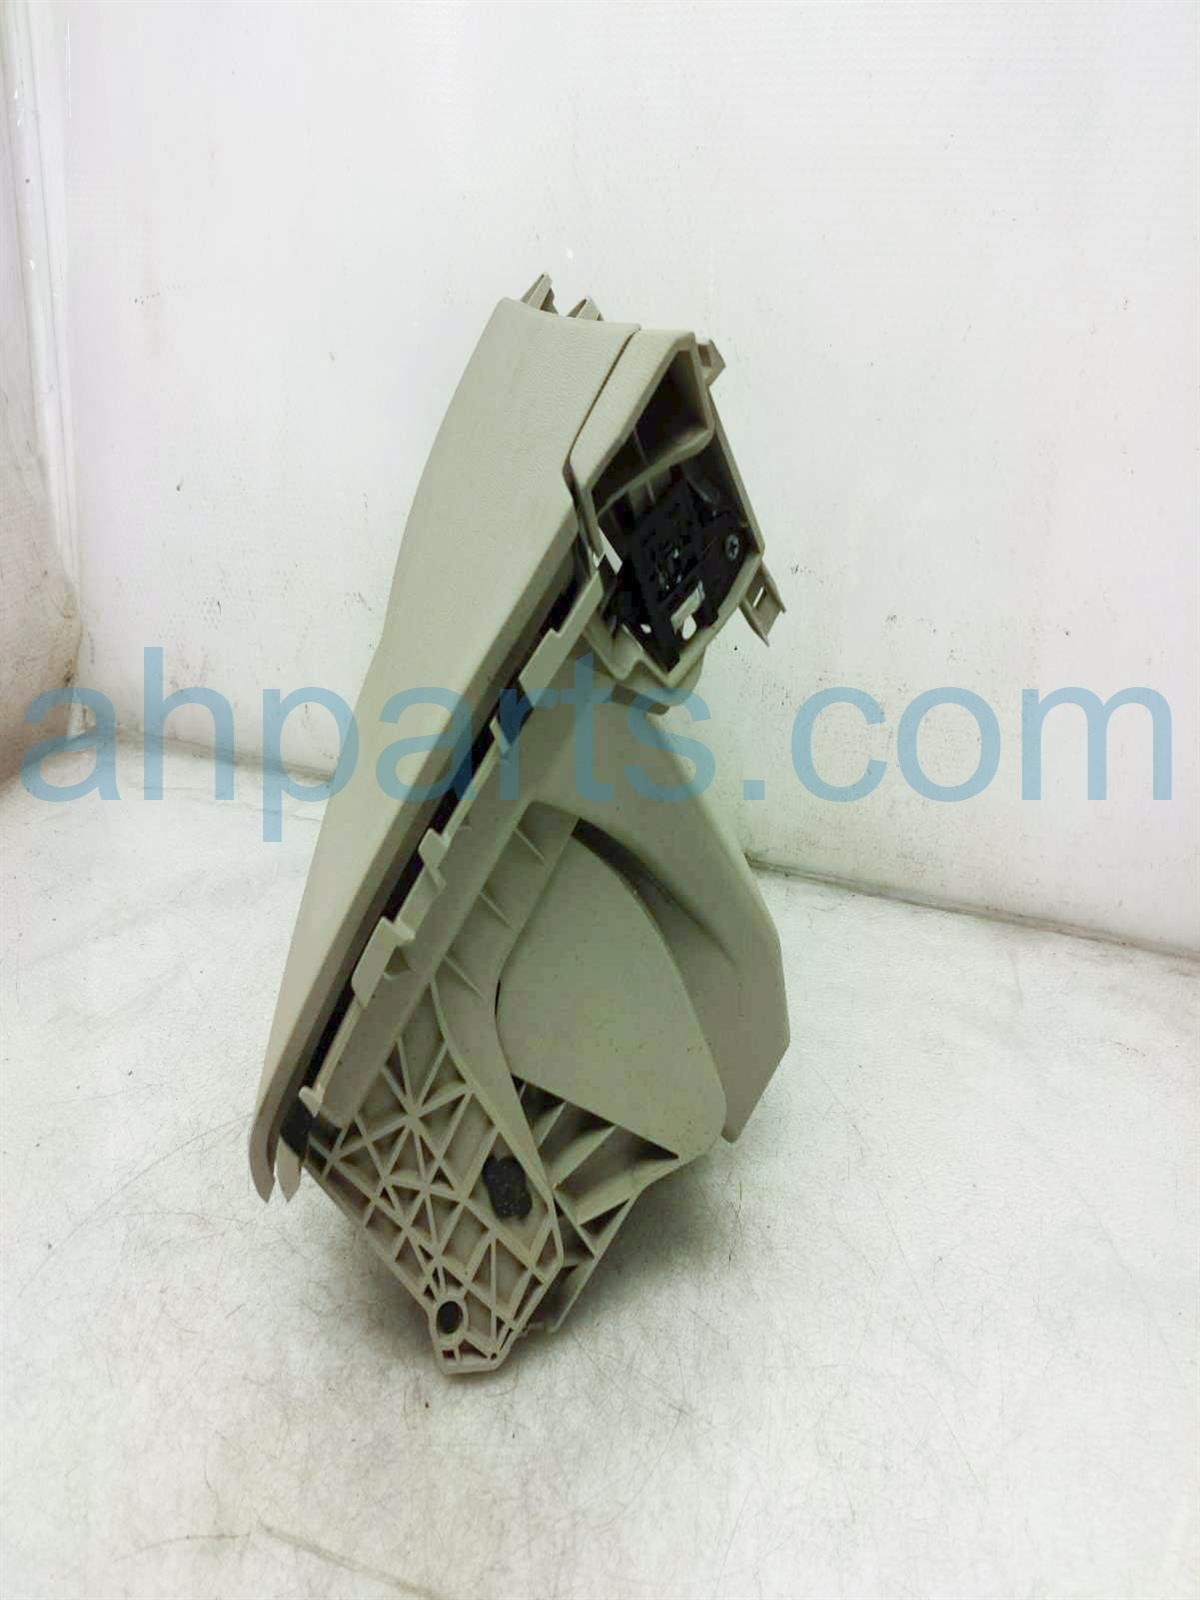 2013 Toyota Sienna Compartment Upper Glove Box   Tan 55452 08020 Replacement